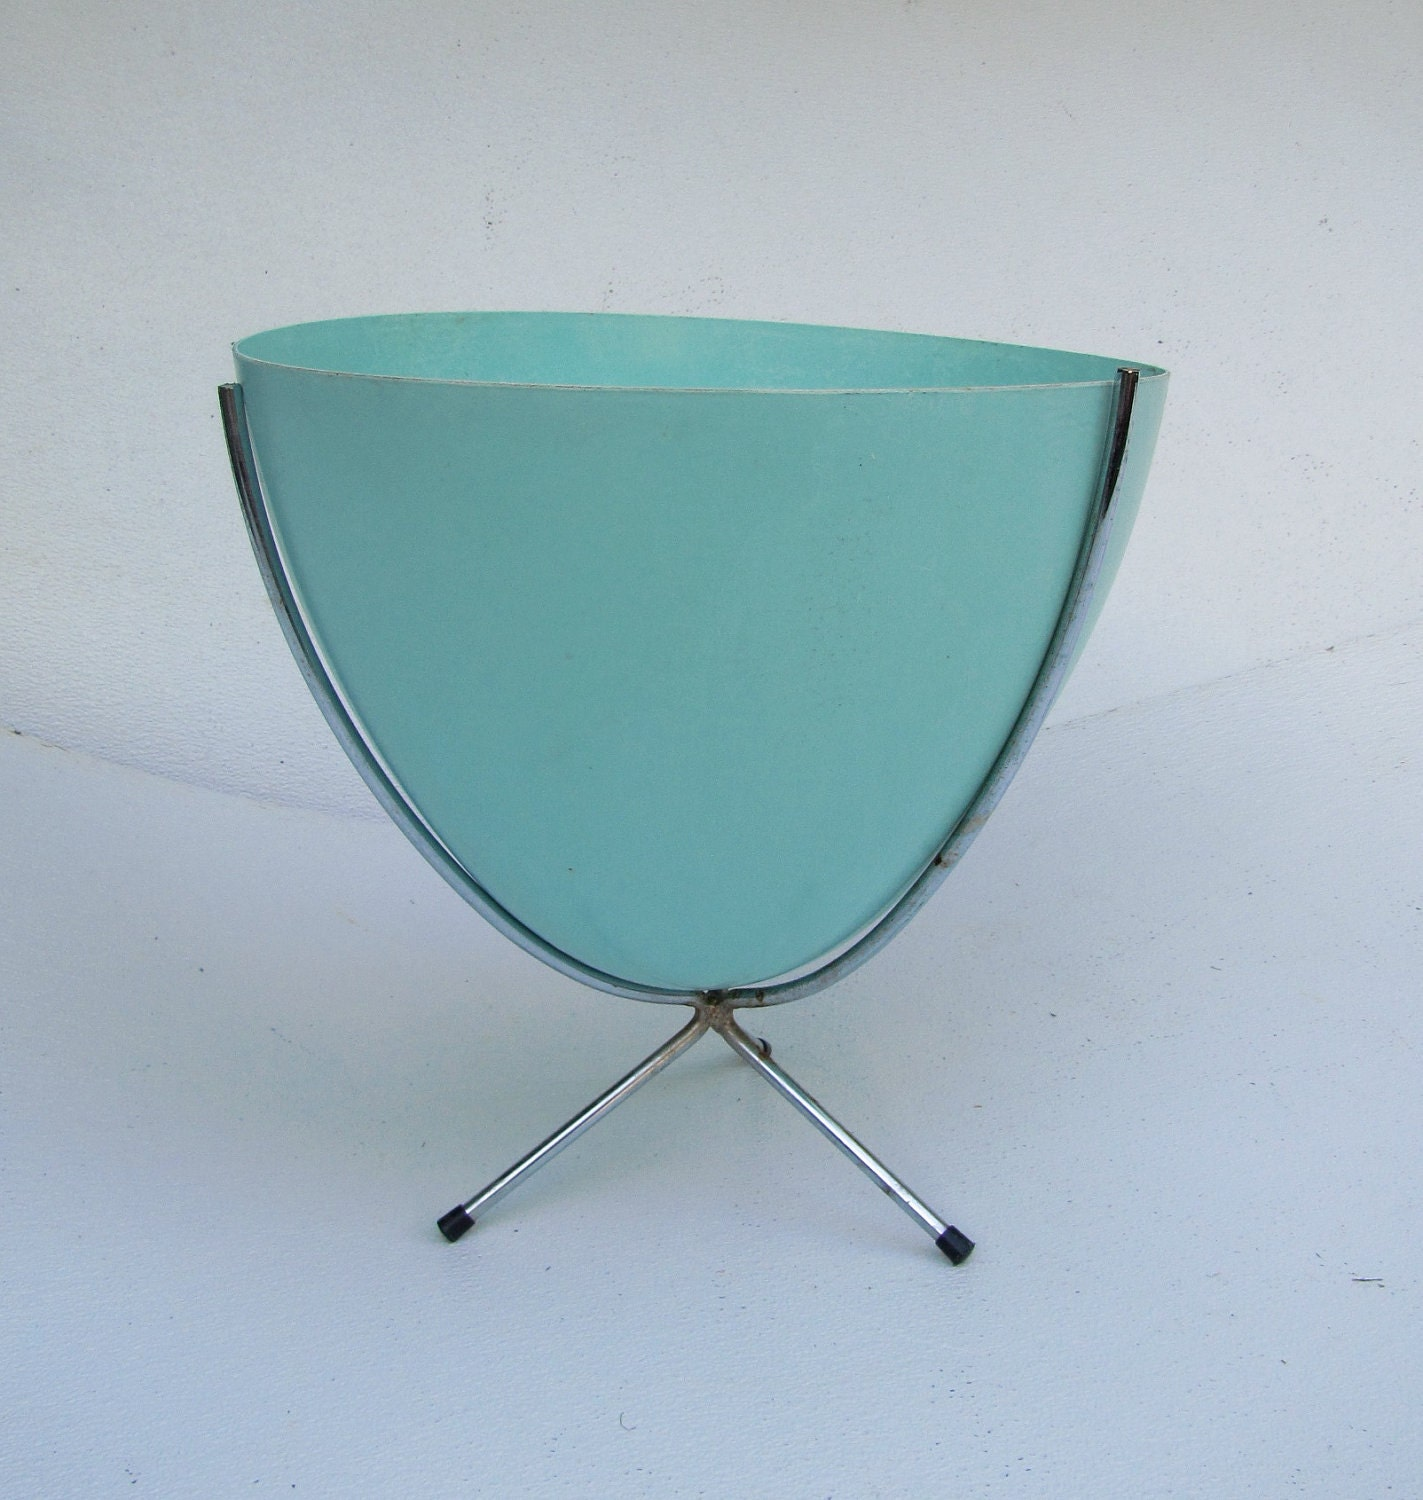 American Mid Century Modern Atomic Age Small Patio Round: Mid Century Modern Fiberglass Bullet Planter 16 Eames By